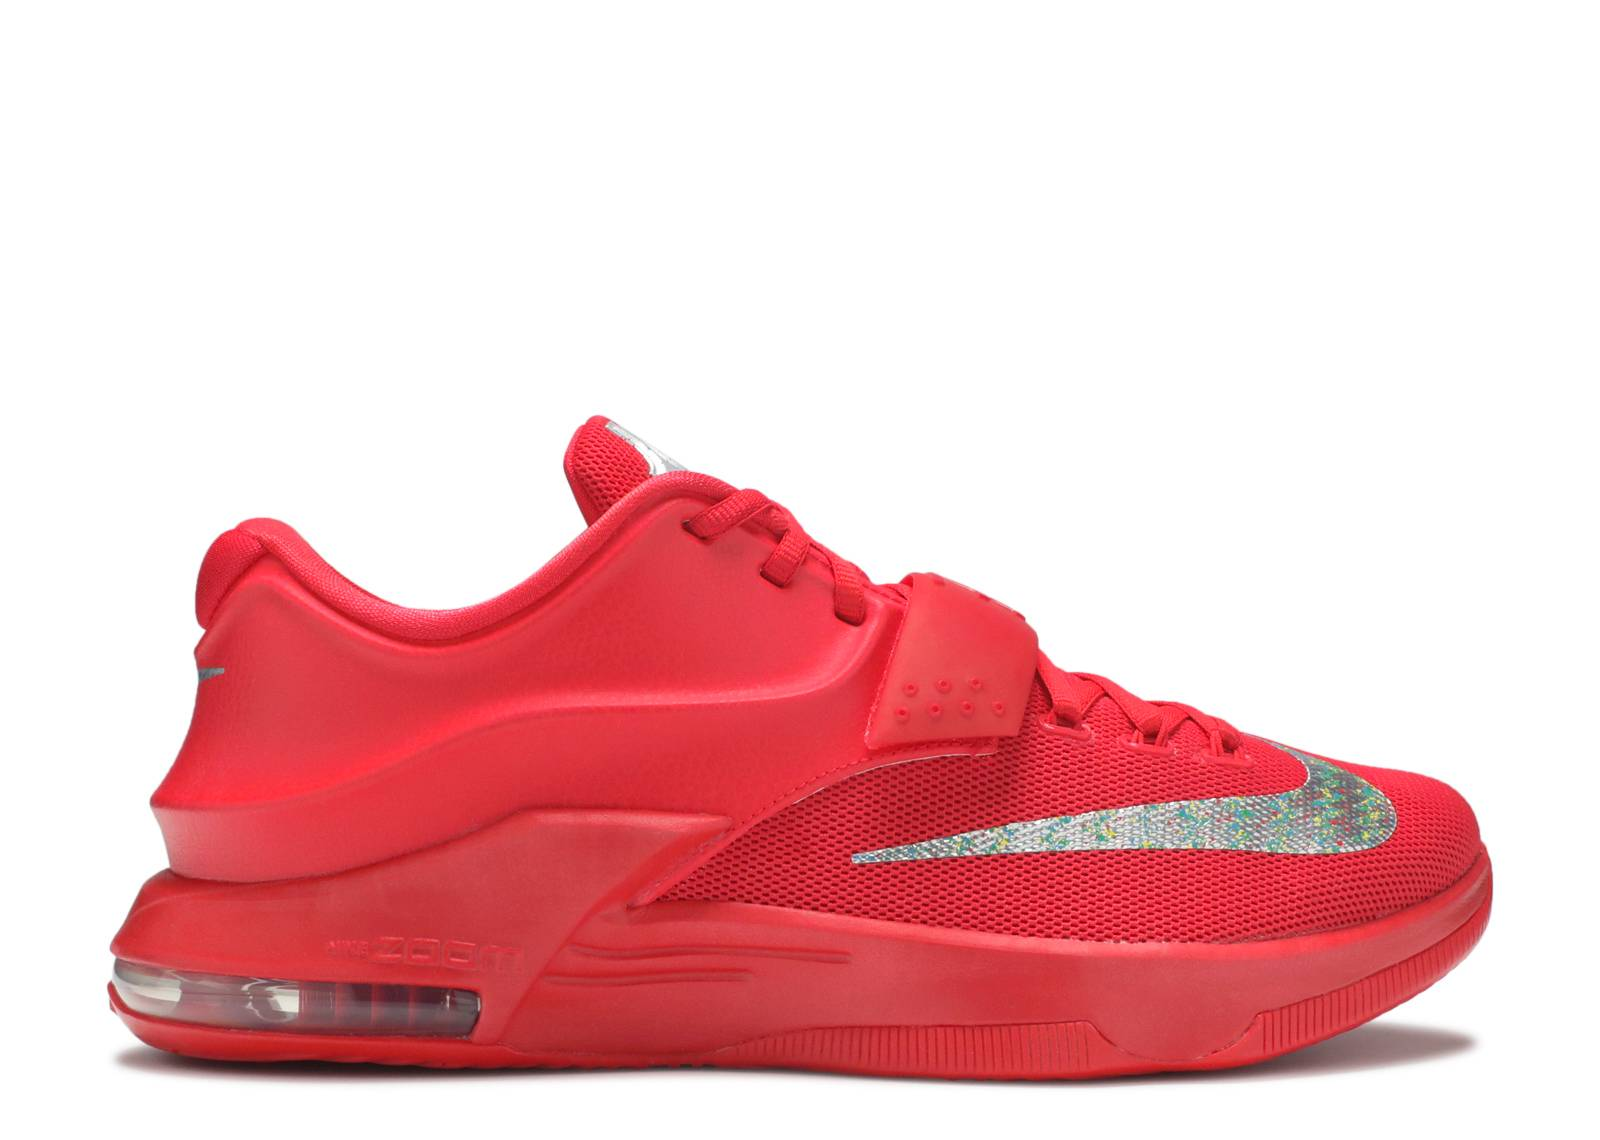 kd 7 quotglobal gamequot nike 653996 660 action red